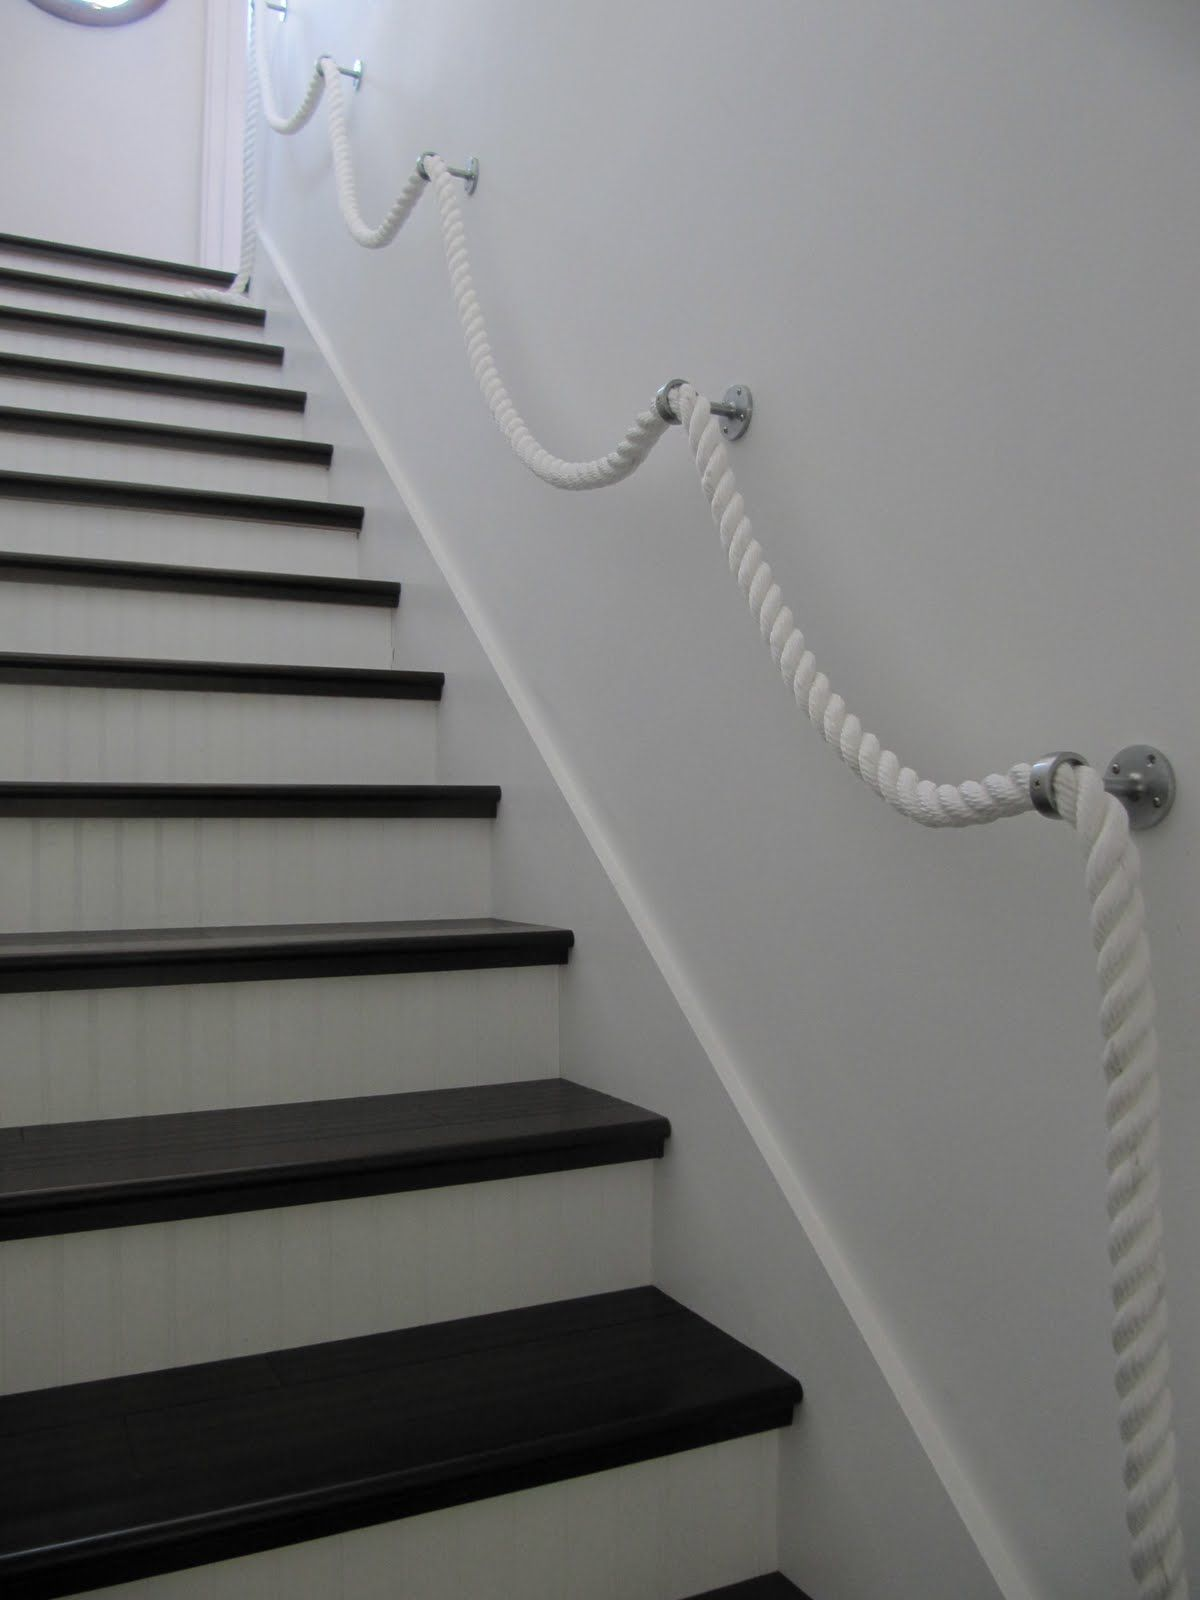 Stair Rope Banister | lbpllc | Pinterest | Stairs, Banisters and Home